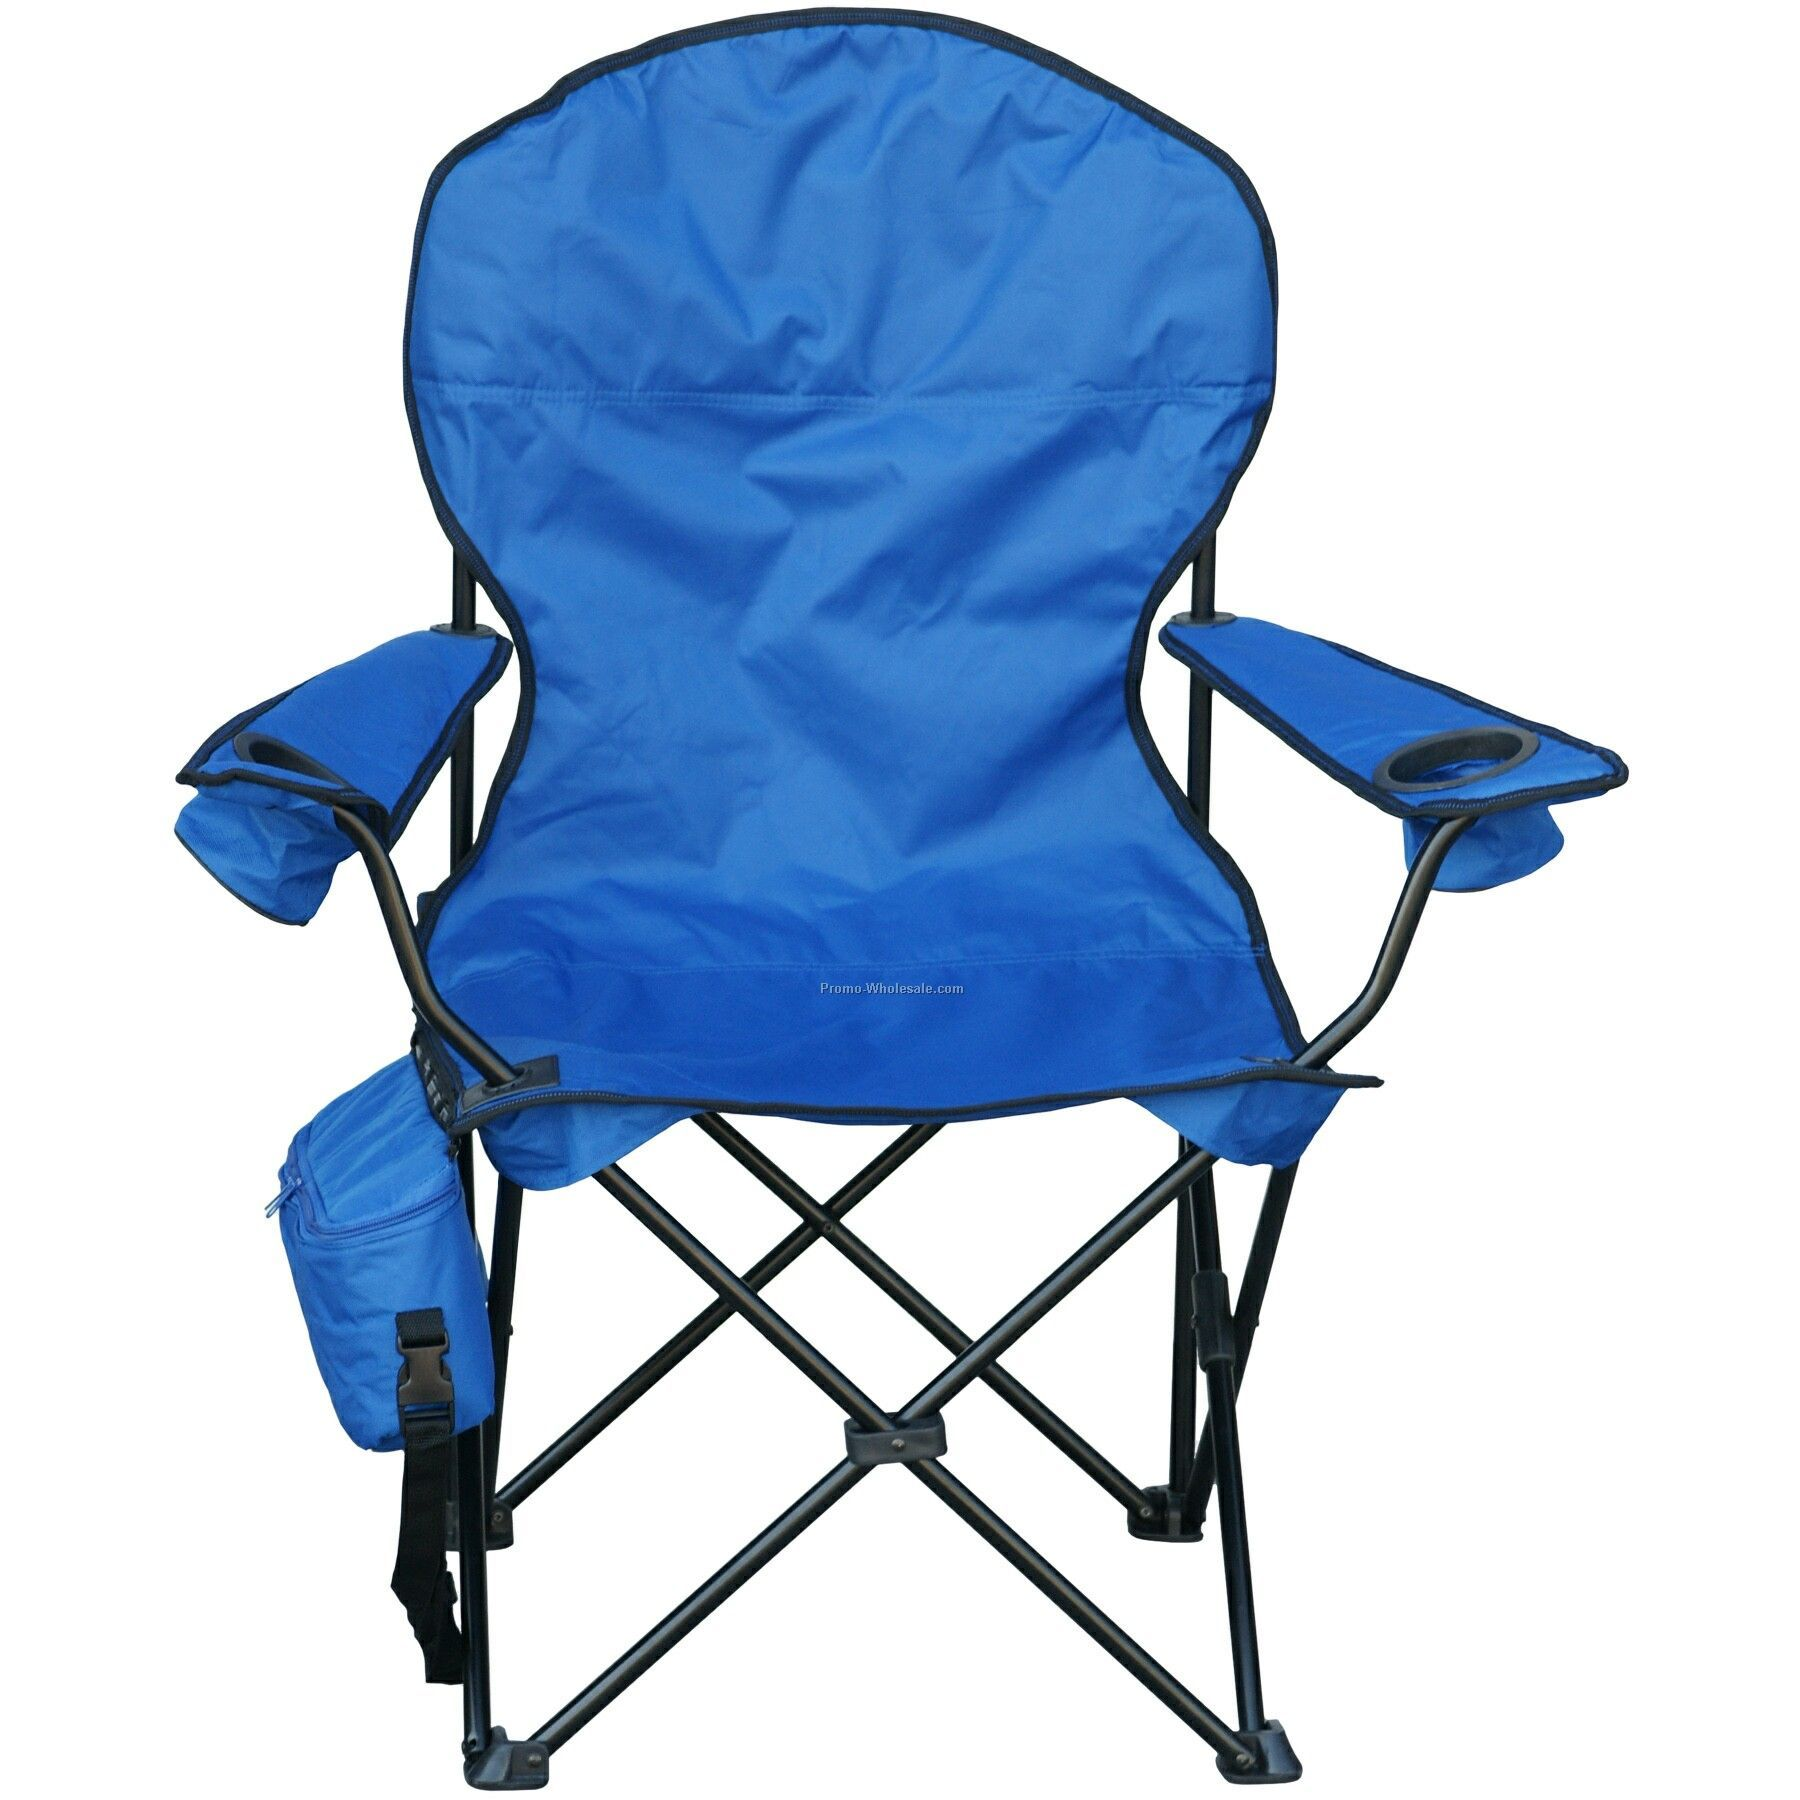 Beau Deluxe Round Back Captainu0027s Chair W/ Removable 6 Pack Cooler And Carry Bag